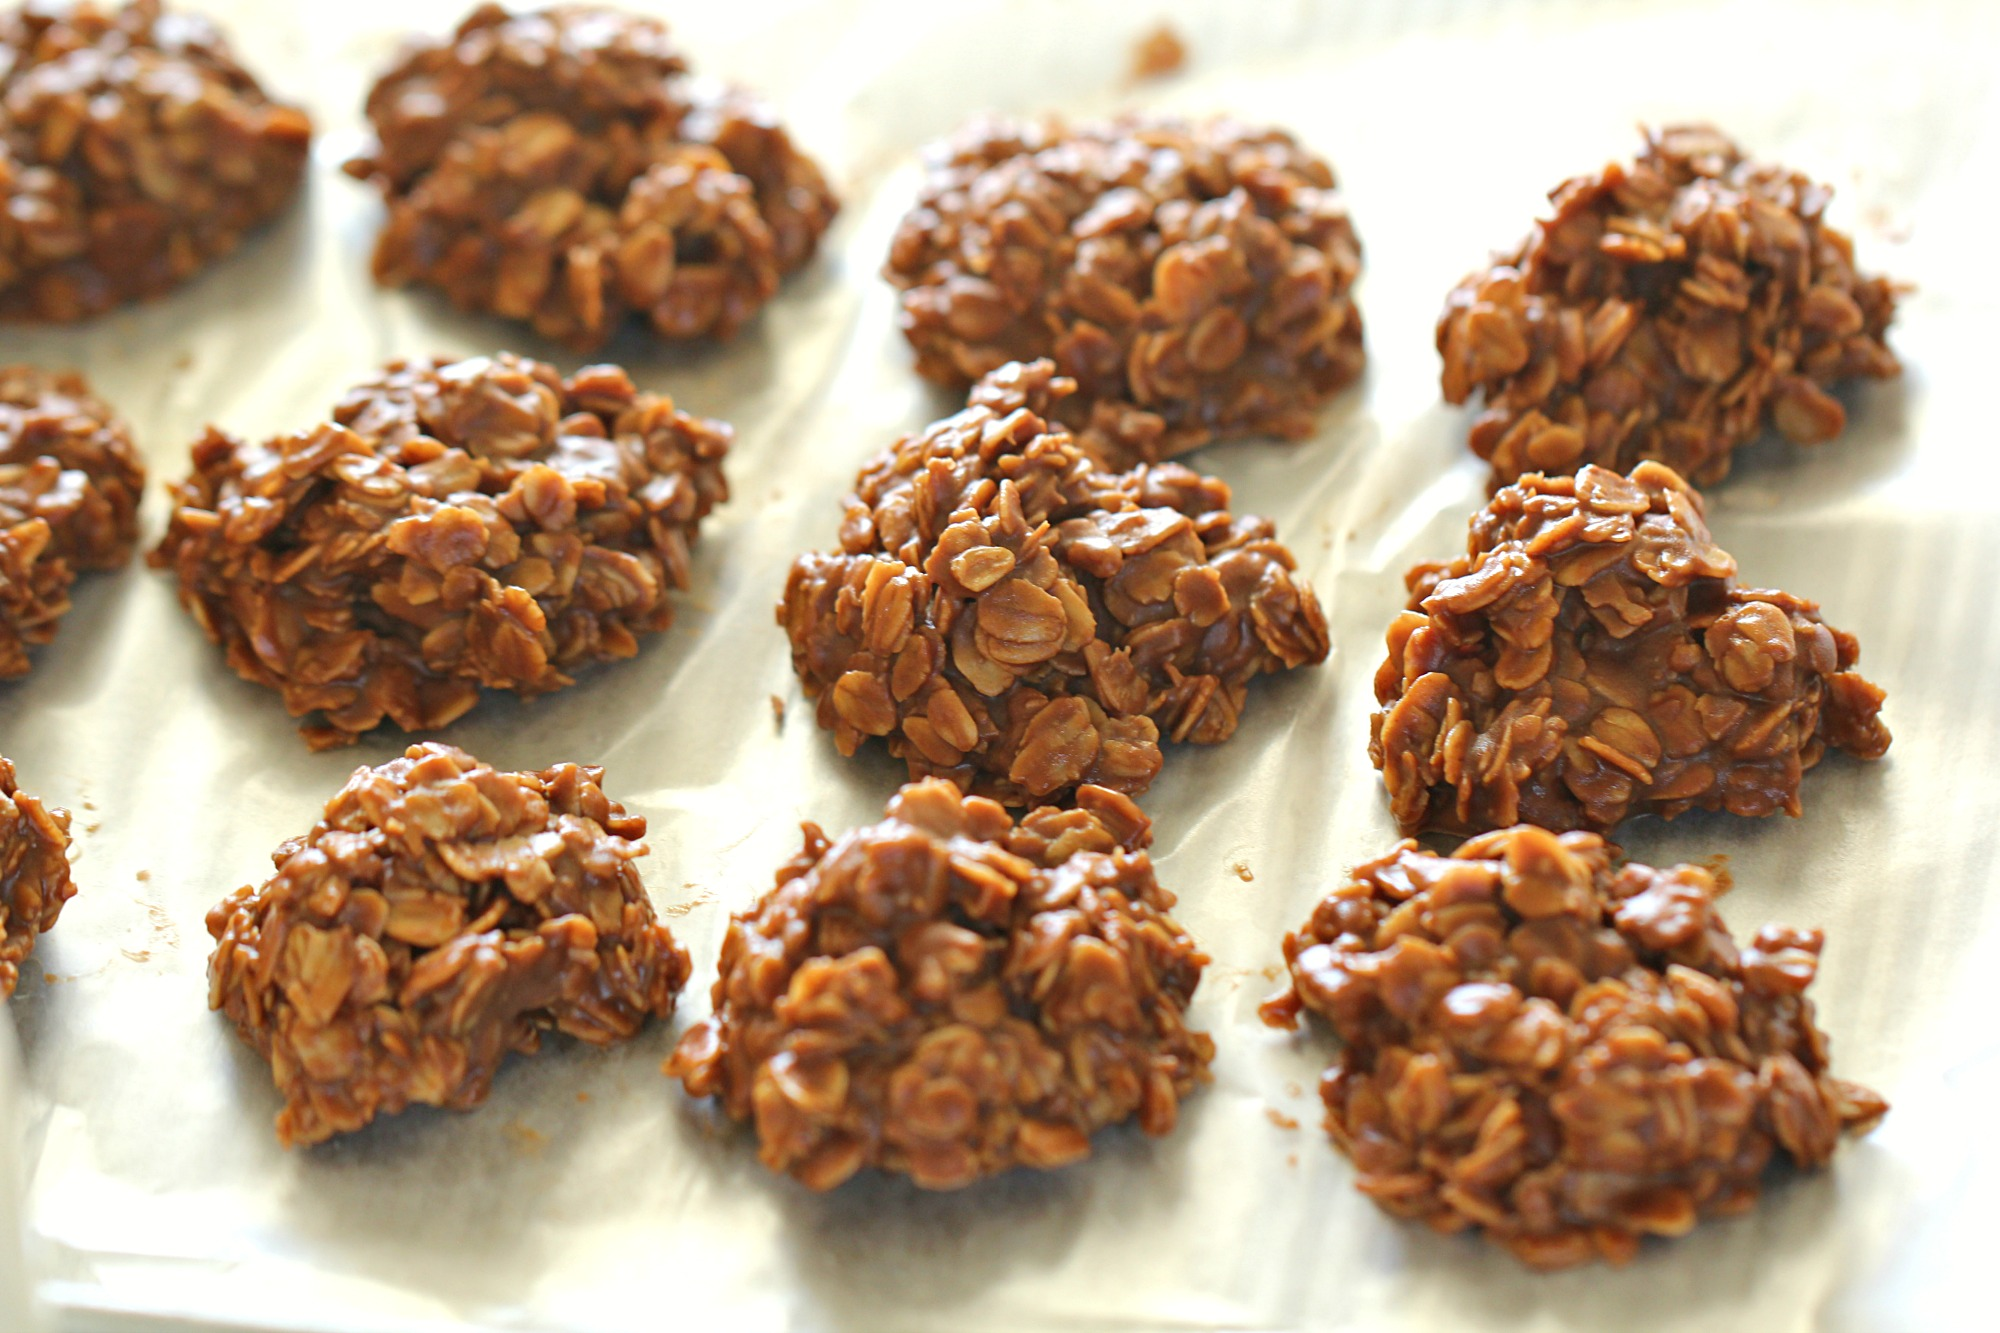 Healthier No Bake Chocolate Peanut Butter Cookies on wax paper